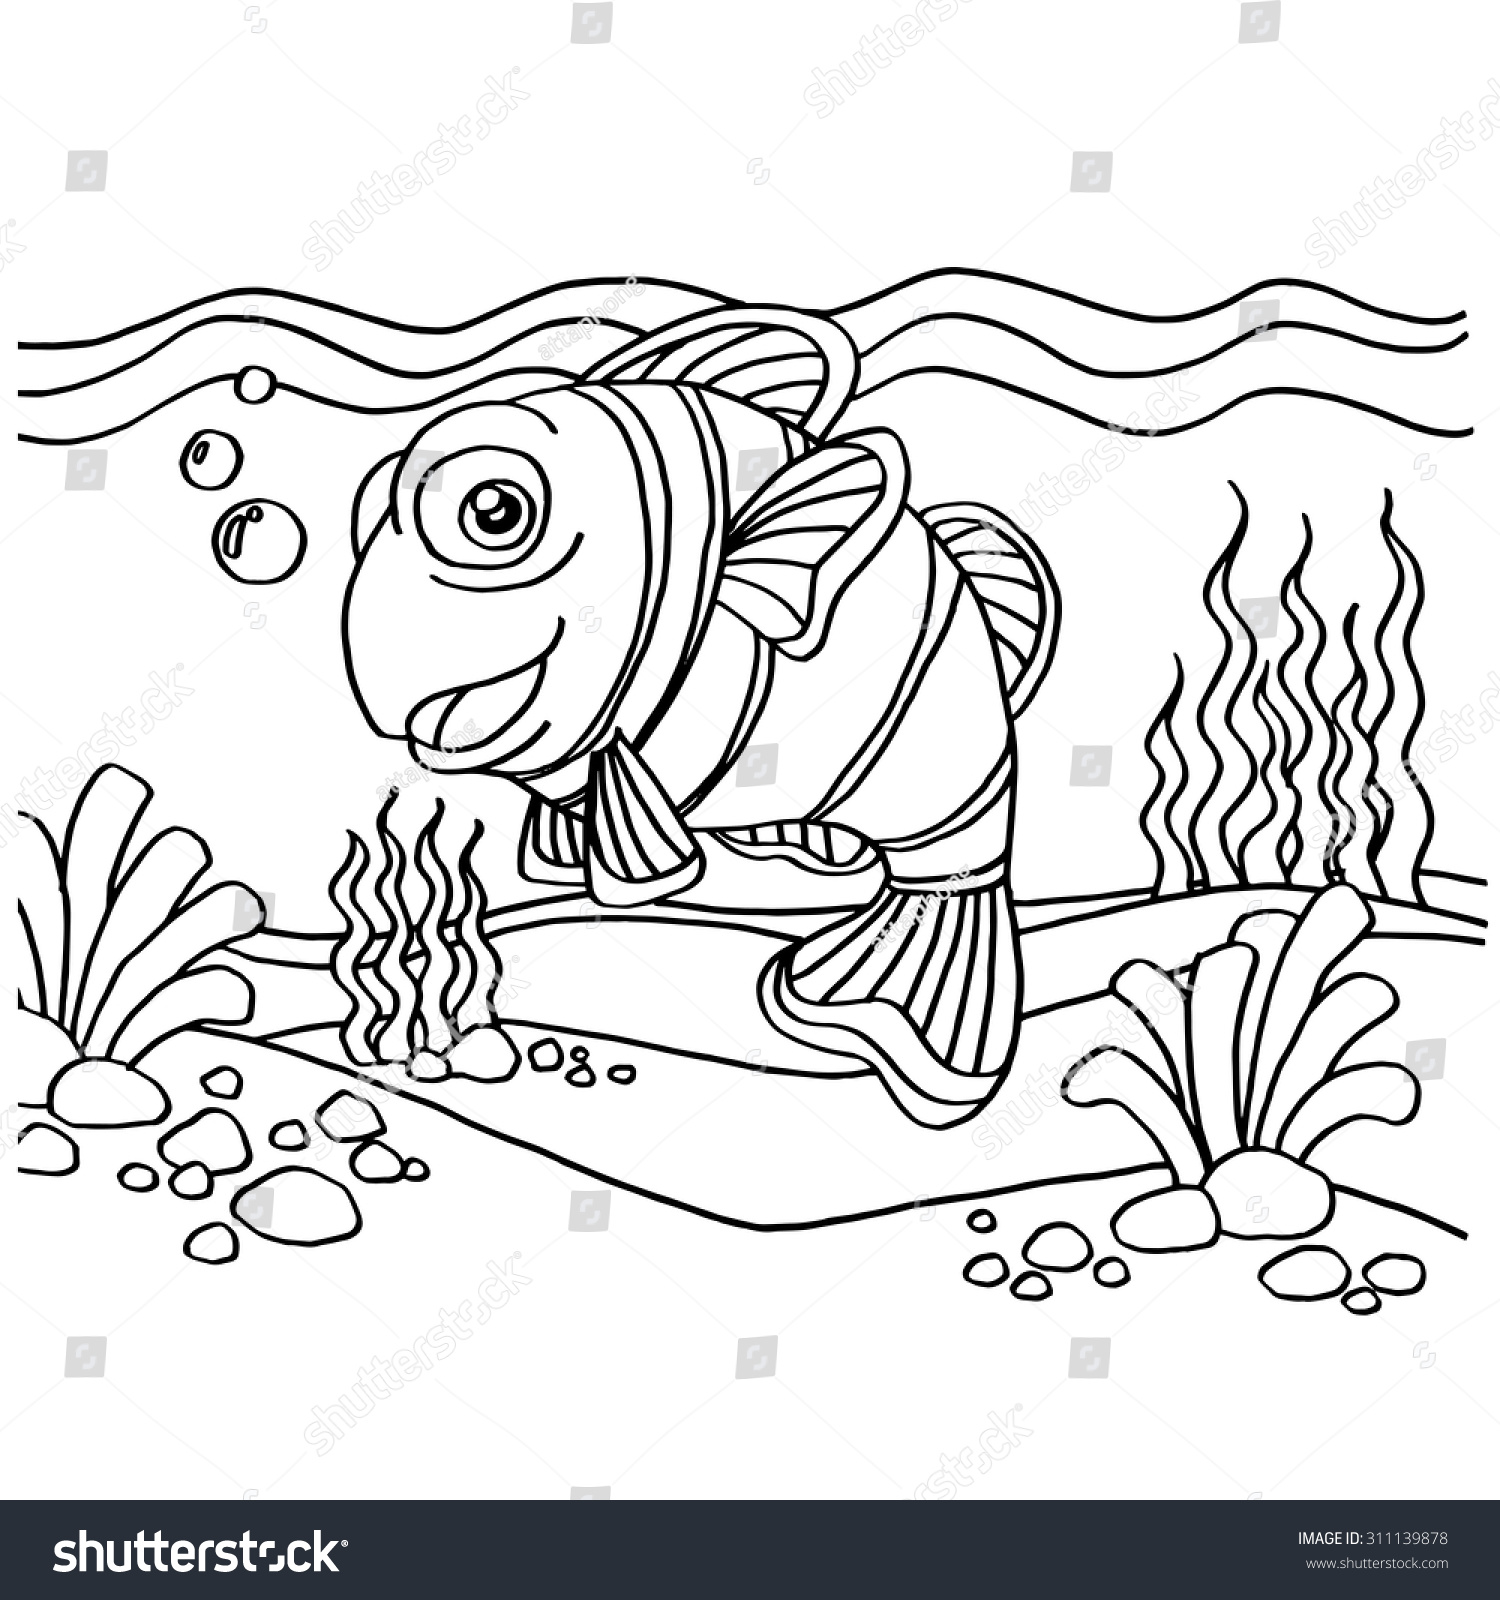 Clownfish Coloring Pages Vector Stock Vector (Royalty Free ...